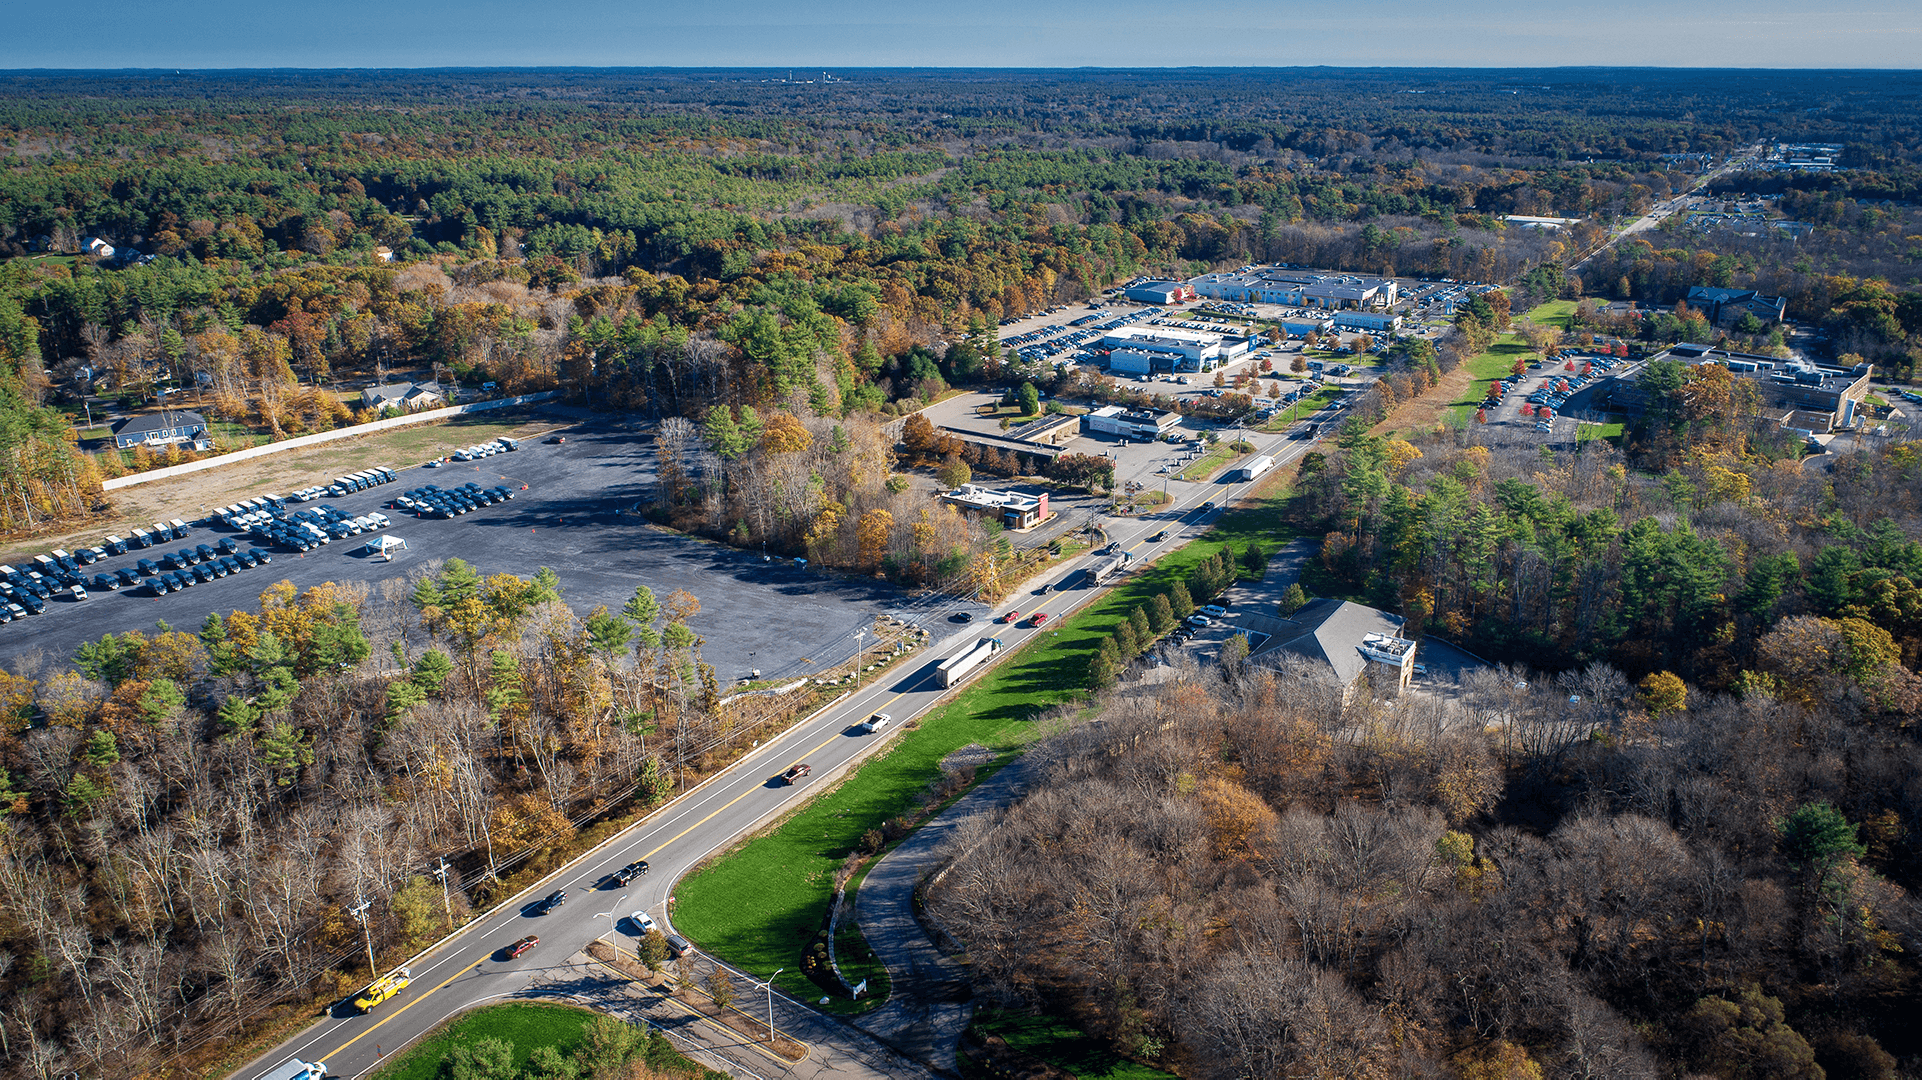 Raynham-MP-Route-44-Looking-East-1